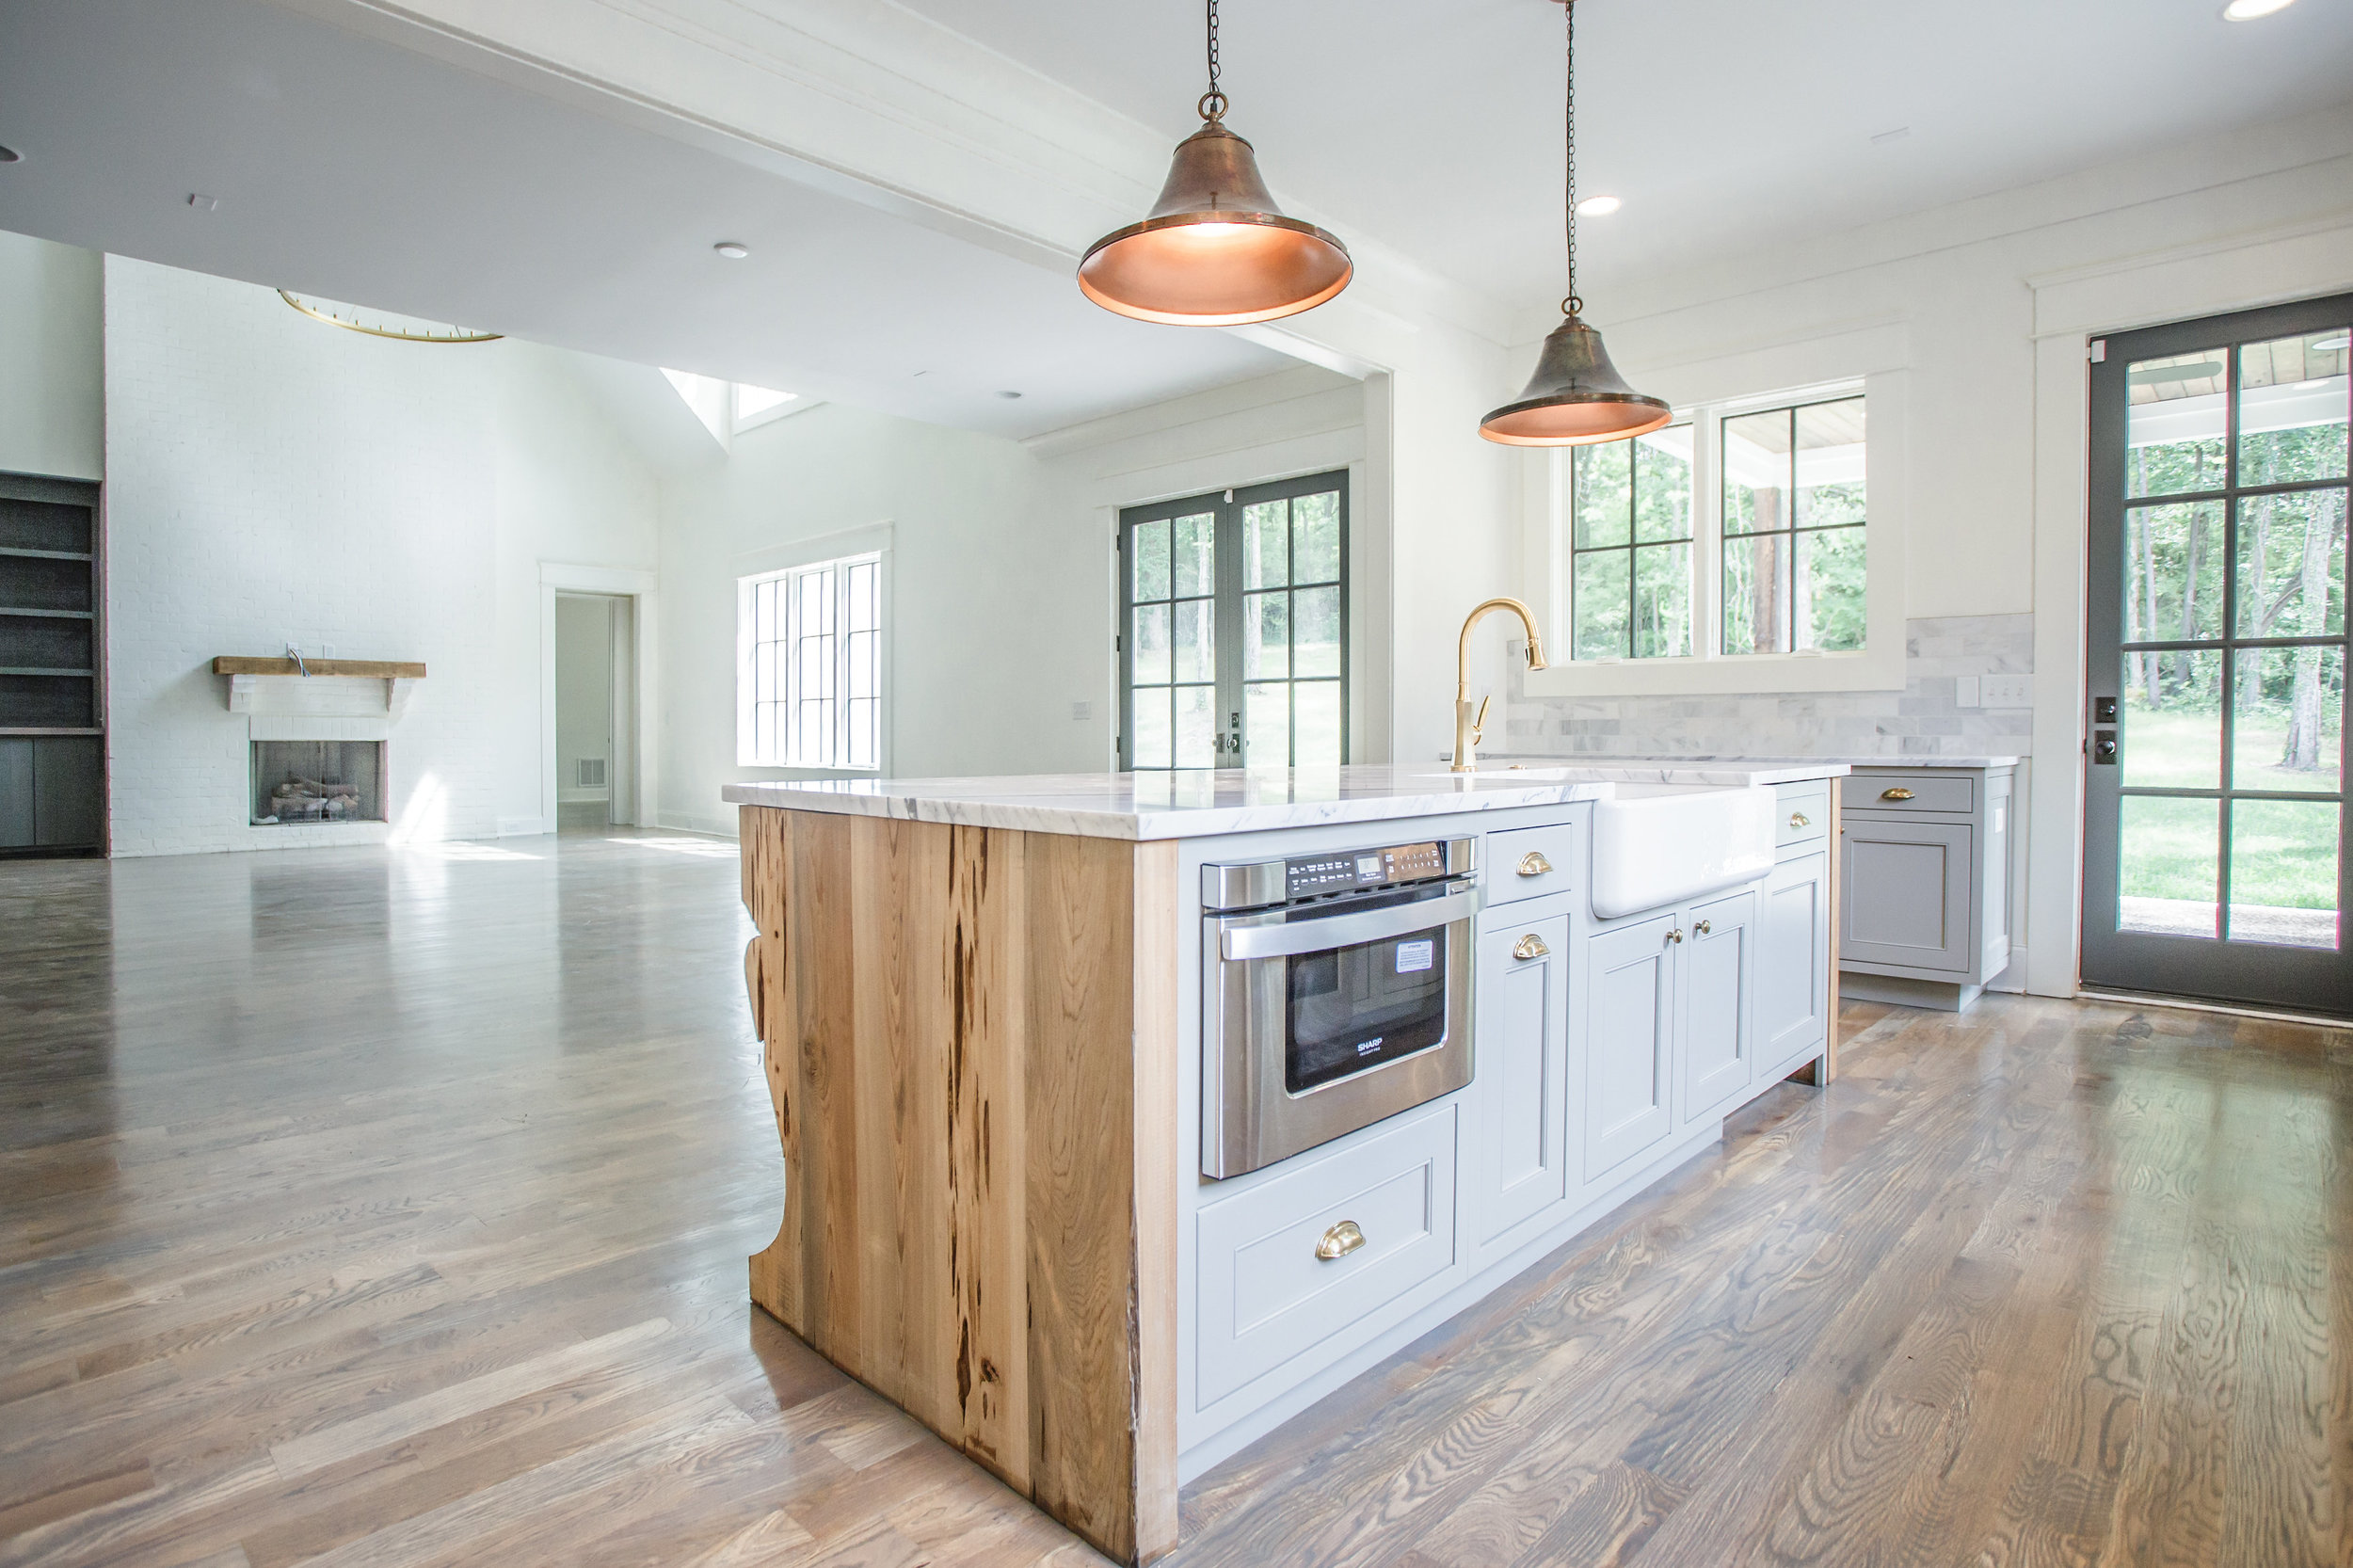 Complete Home Restoration - We take pride in preserving the past when the opportunity presents itself. These homes are renovated to the studs, and completely transformed while preserving various original architectural aspects to reflect the history of the property. Take a look through our galleries to see some examples.